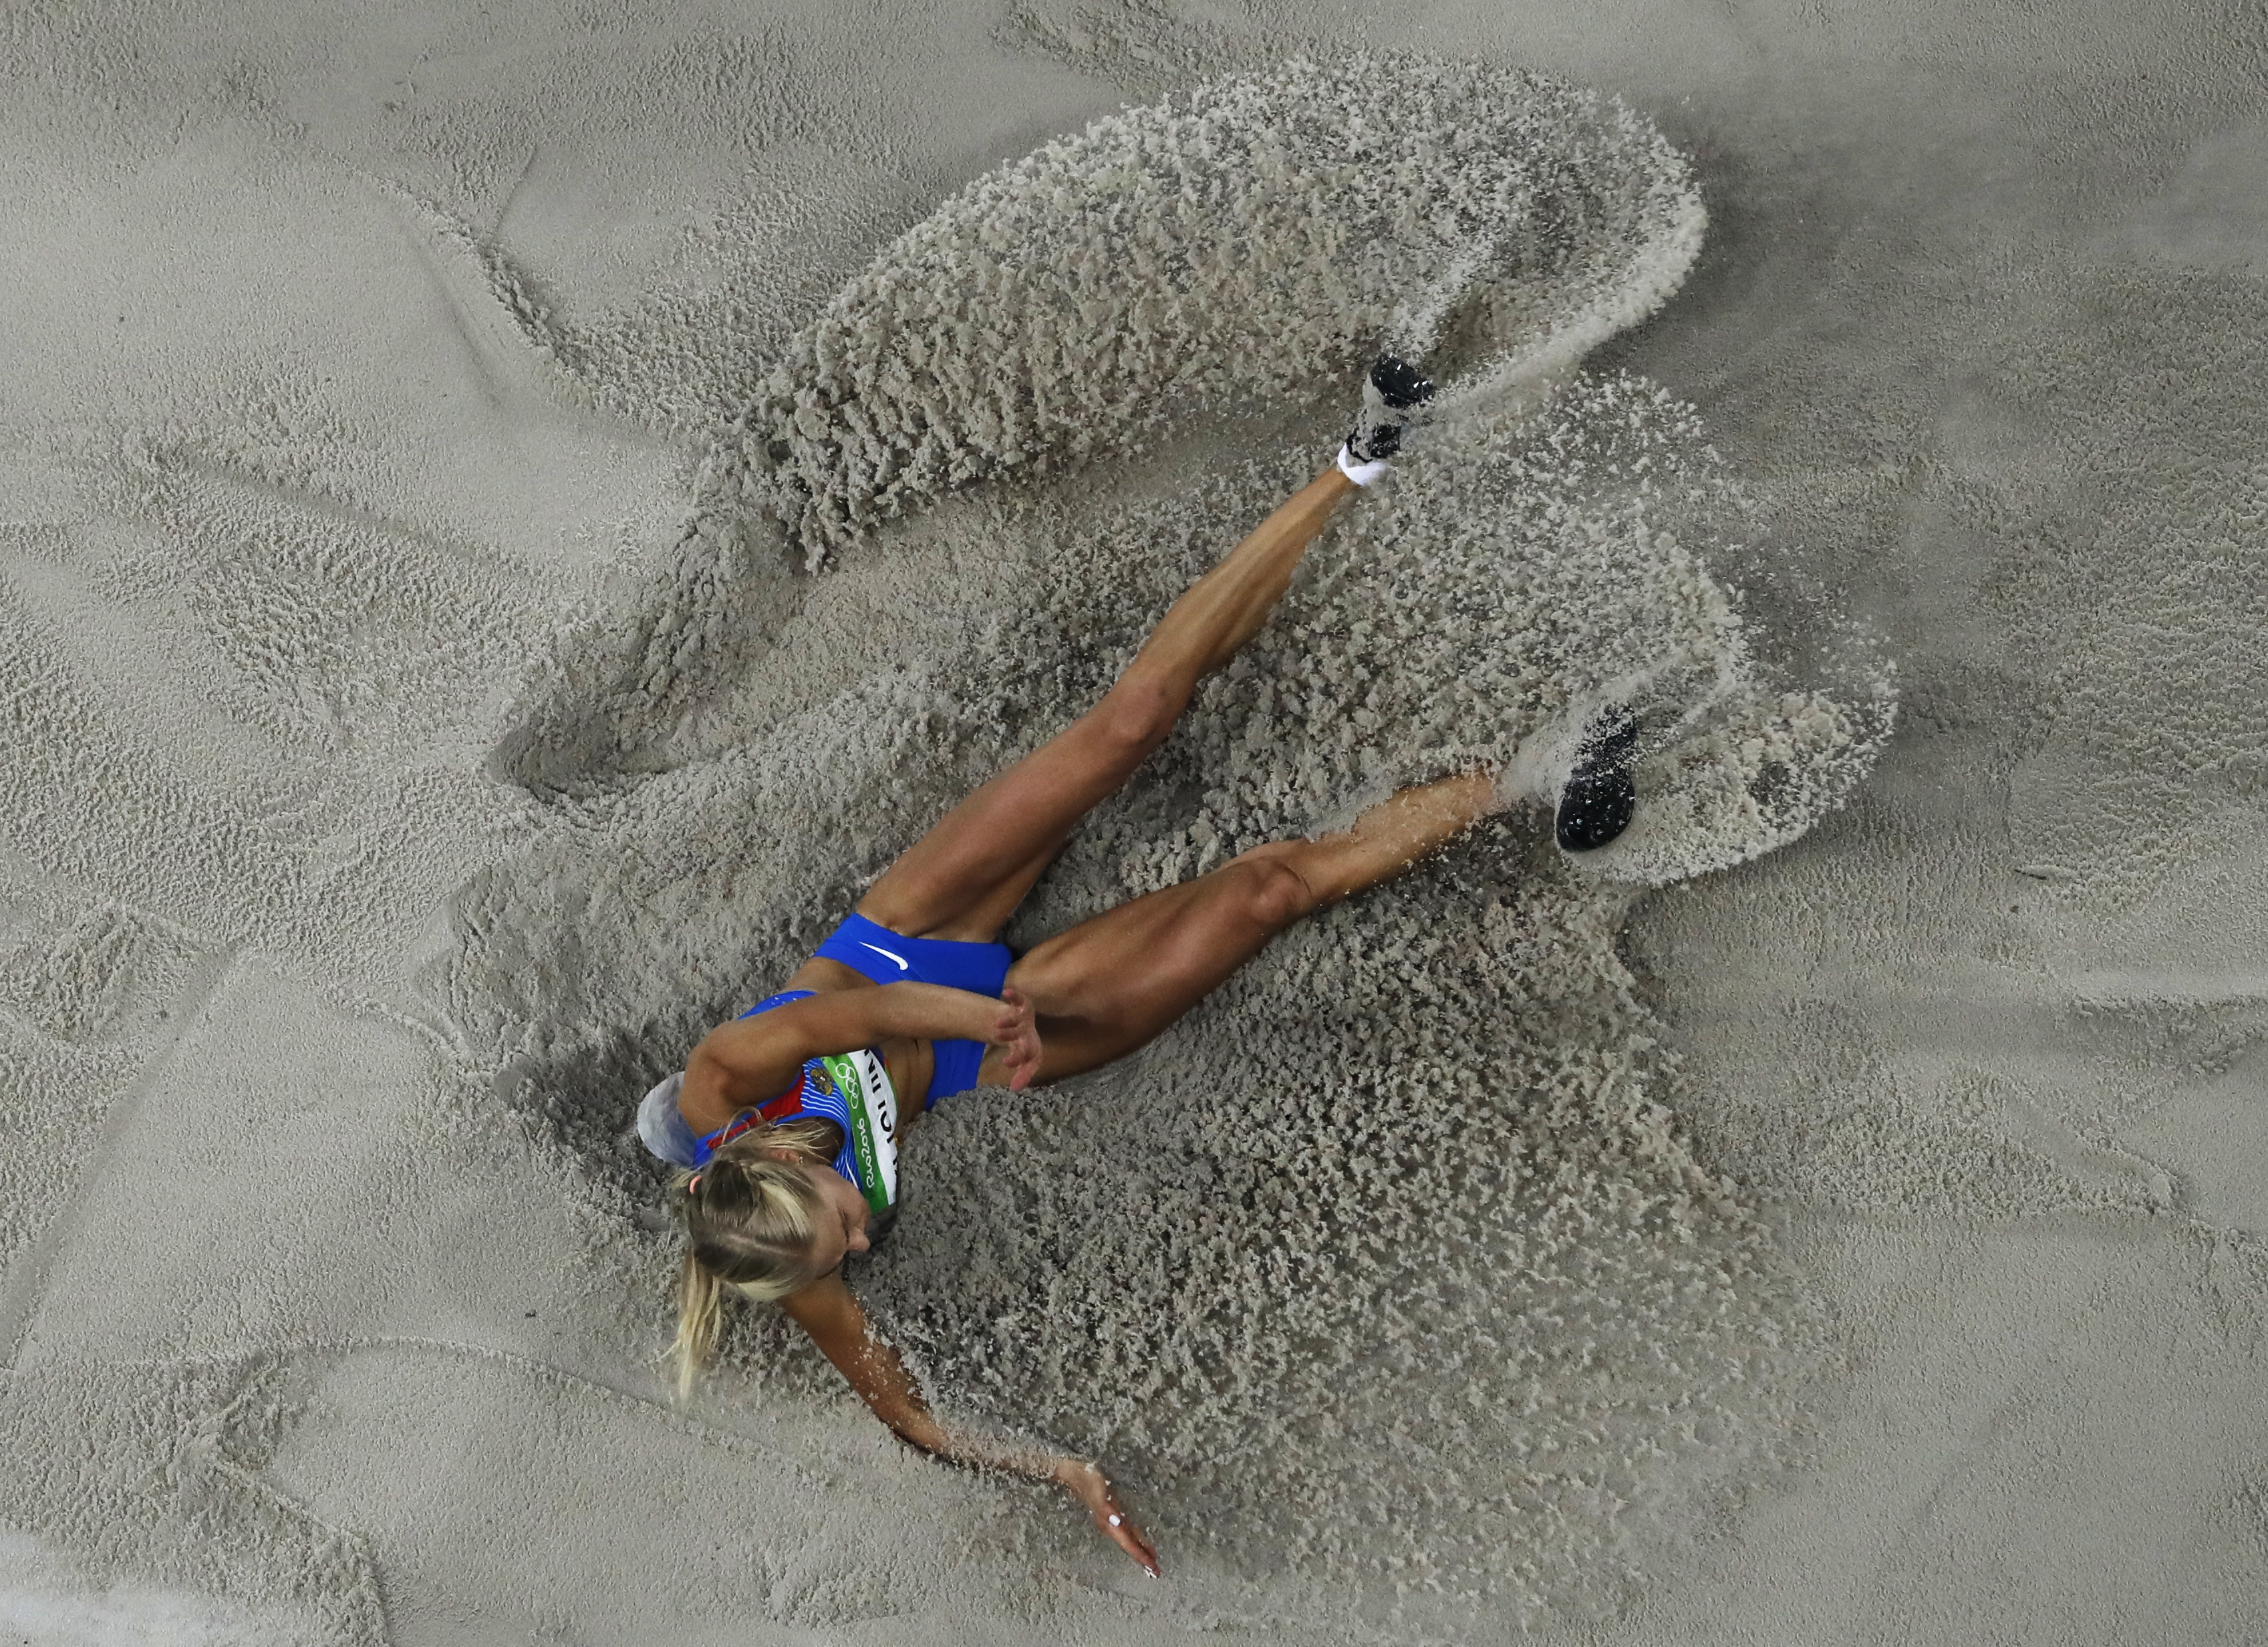 Russia's Darya Klishina competes in the long jump finals during the athletics competitions of the 2016 Summer Olympics at the Olympic stadium in Rio de Janeiro, Brazil, Wednesday, Aug. 17, 2016. (AP Photo/Morry Gash)